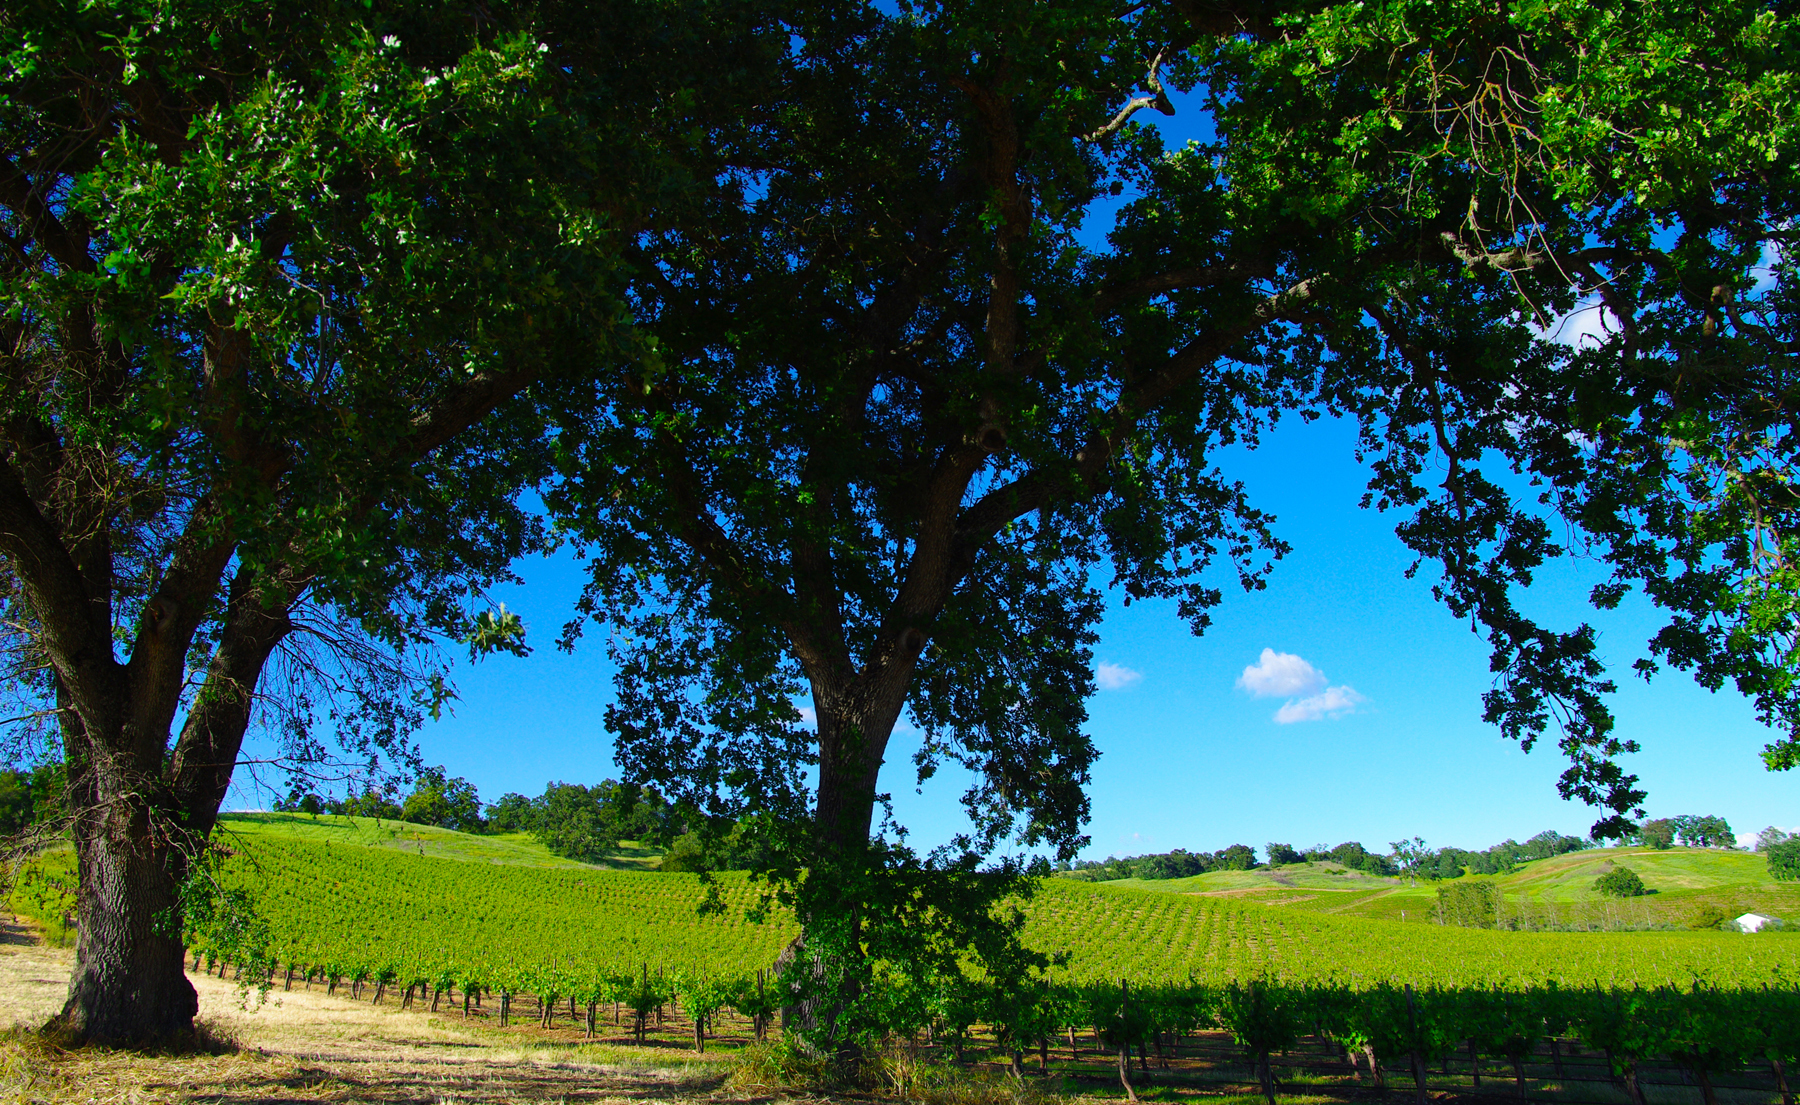 Oaks and Vines